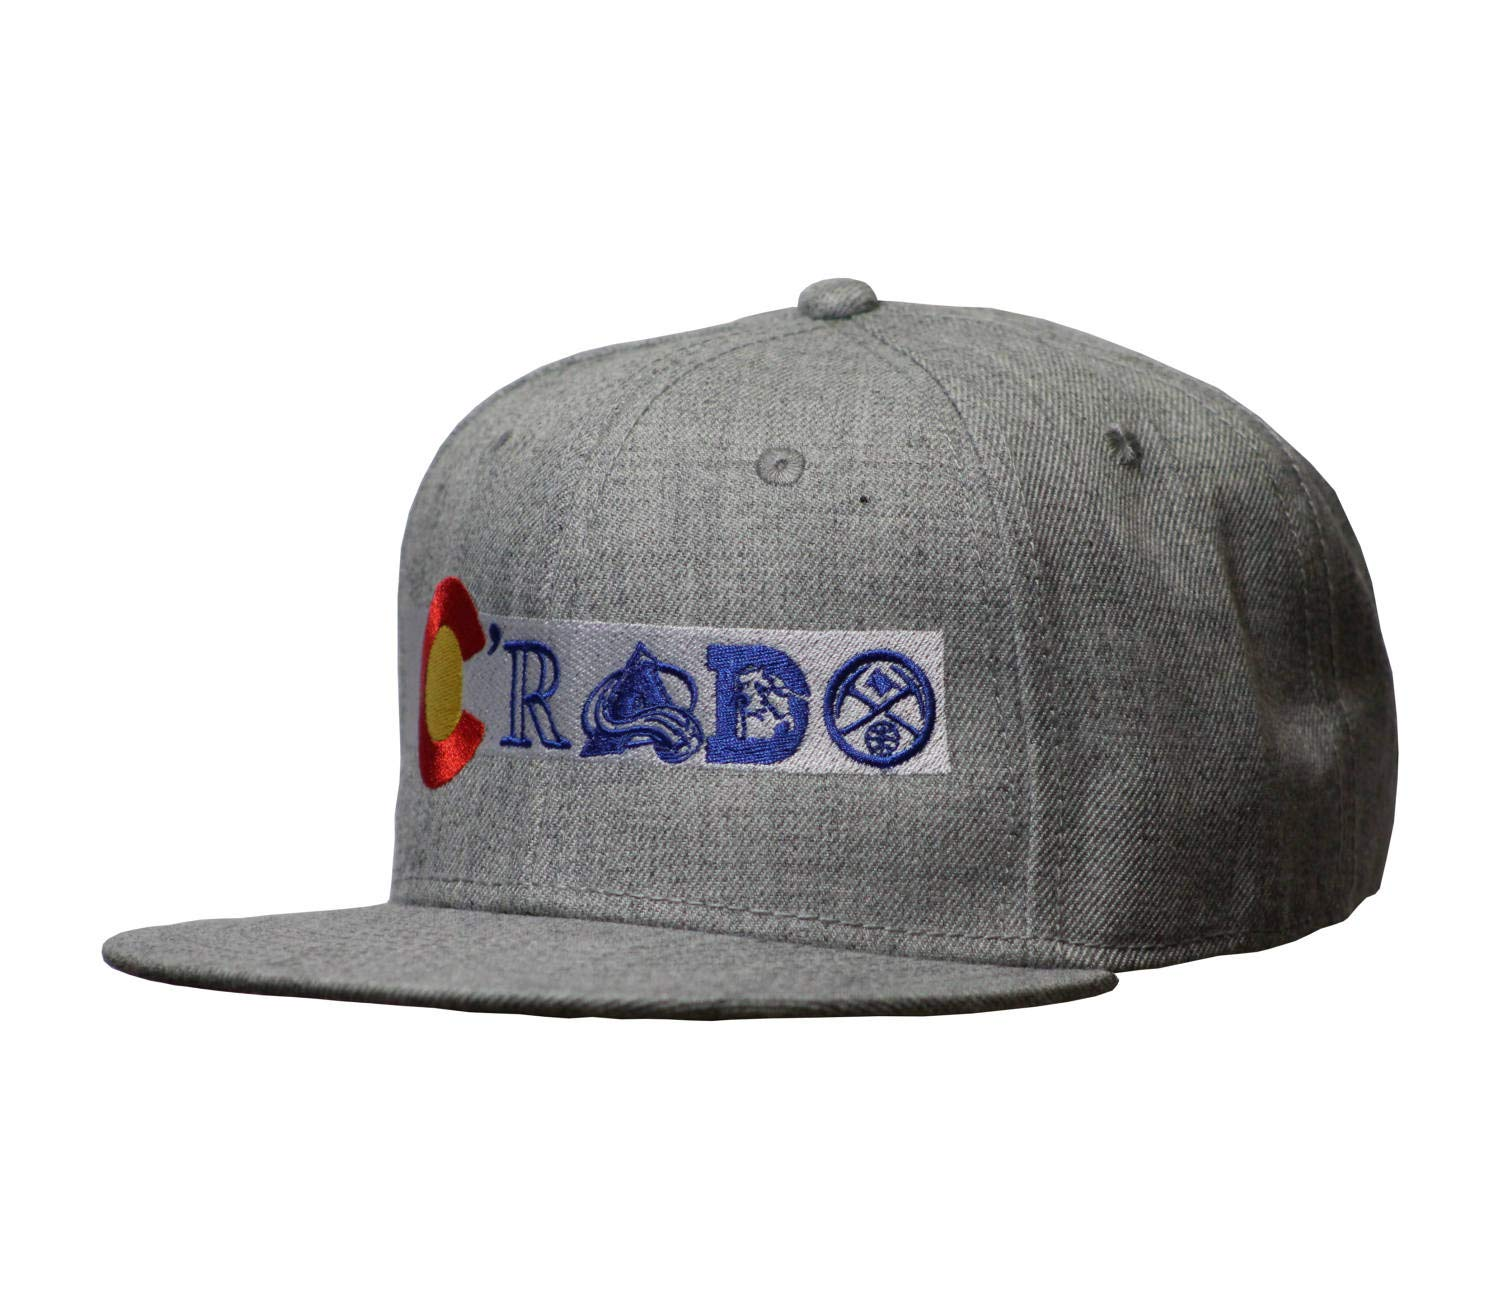 e2484c556 Colorado Flag Snap Back Flat Bill Hat. Crado Hat. Colorado Flag with Sports  Teams (Flat Bill Snapback Heather/Heather)